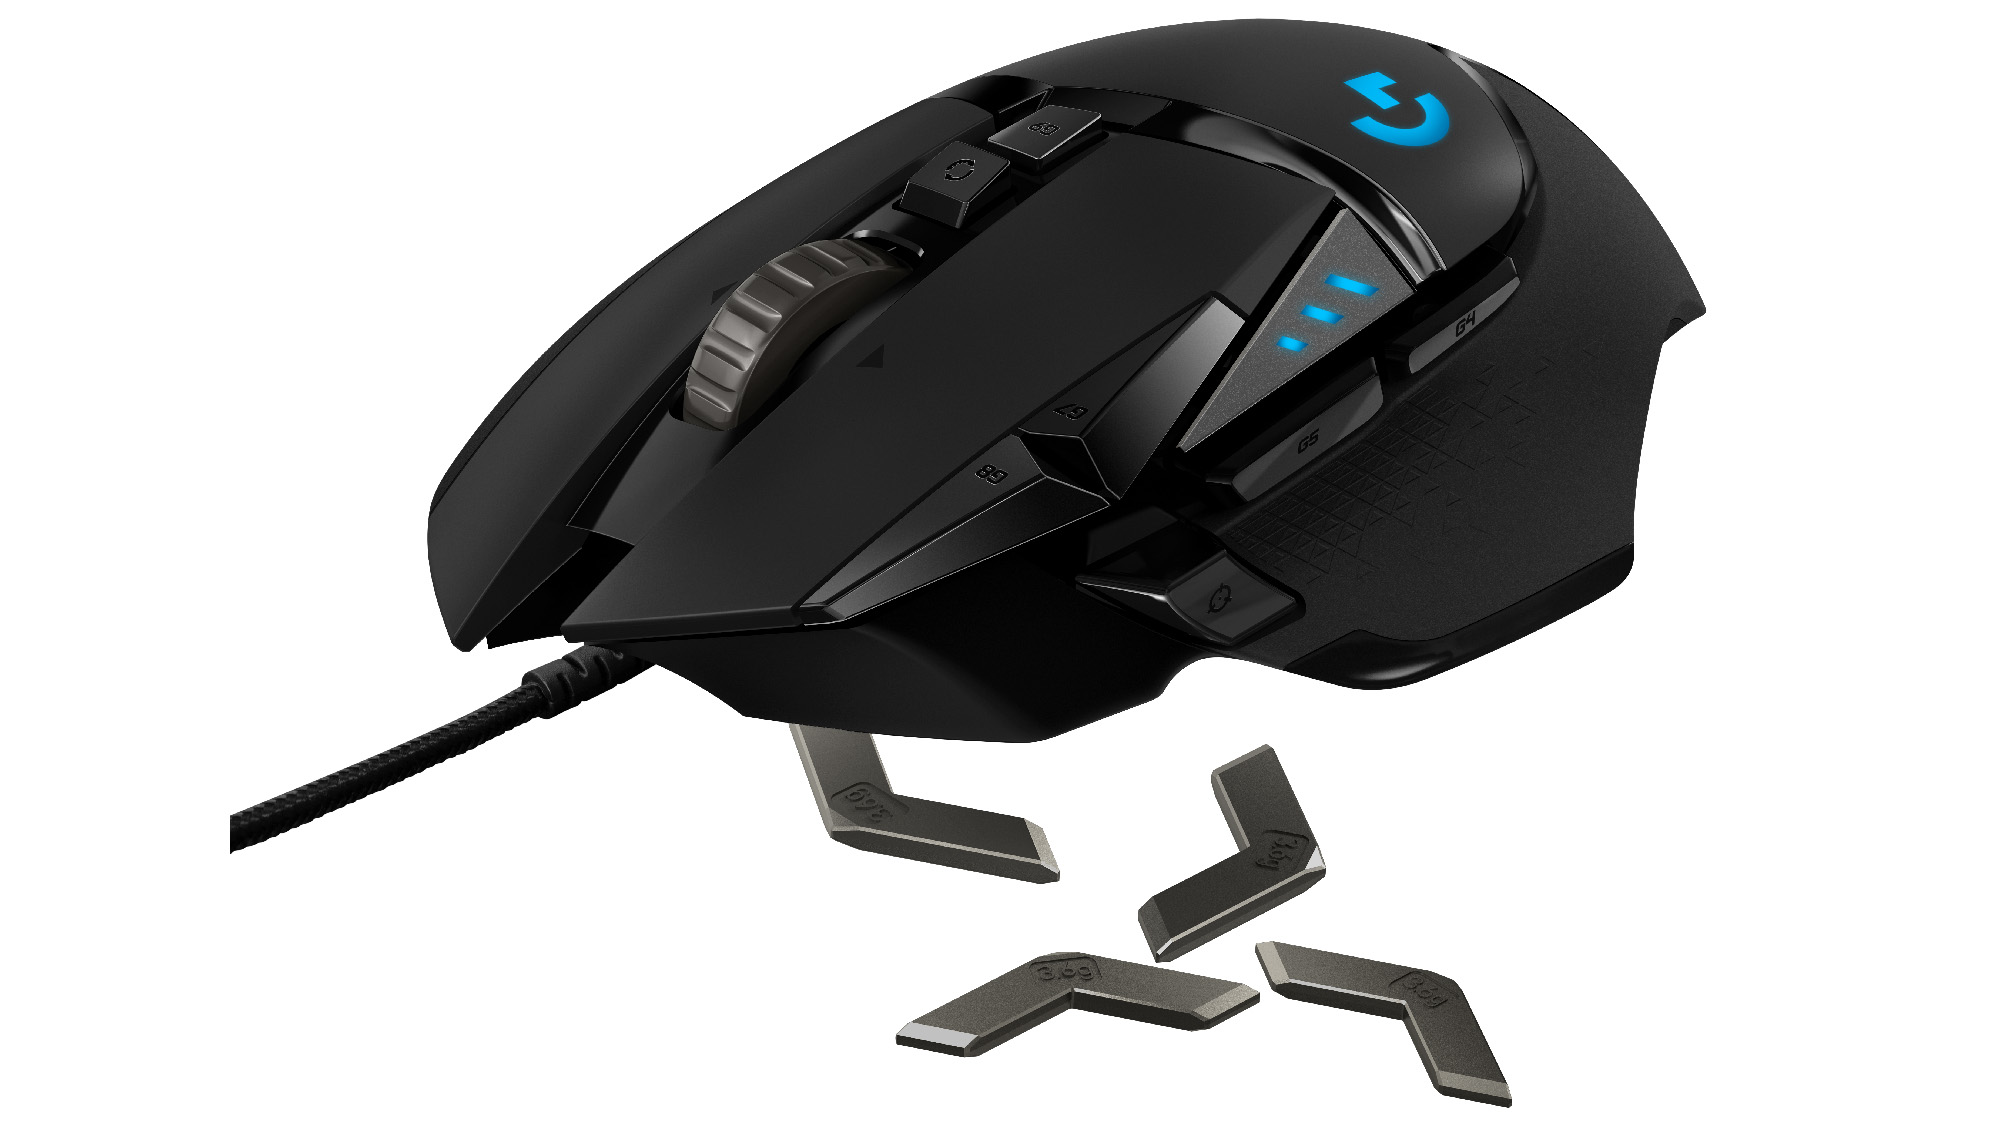 ff4ee4e9937 The Logitech G502 gaming mouse is currently 41% off at Amazon, down to  $49.90 | PC Gamer